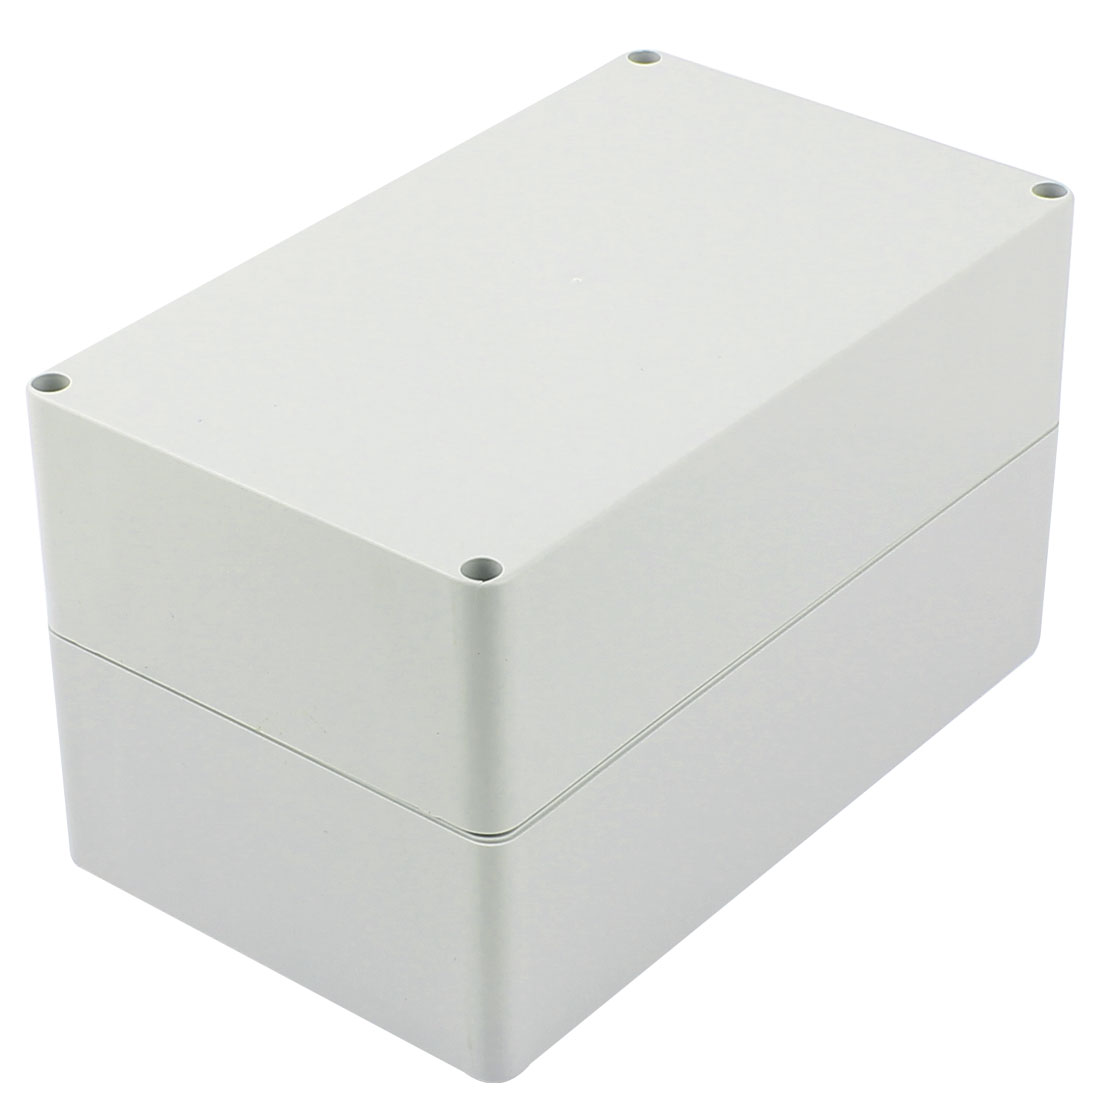 200x120x115mm Plastic Enclosure Sealed Power Junction Box Case Gray